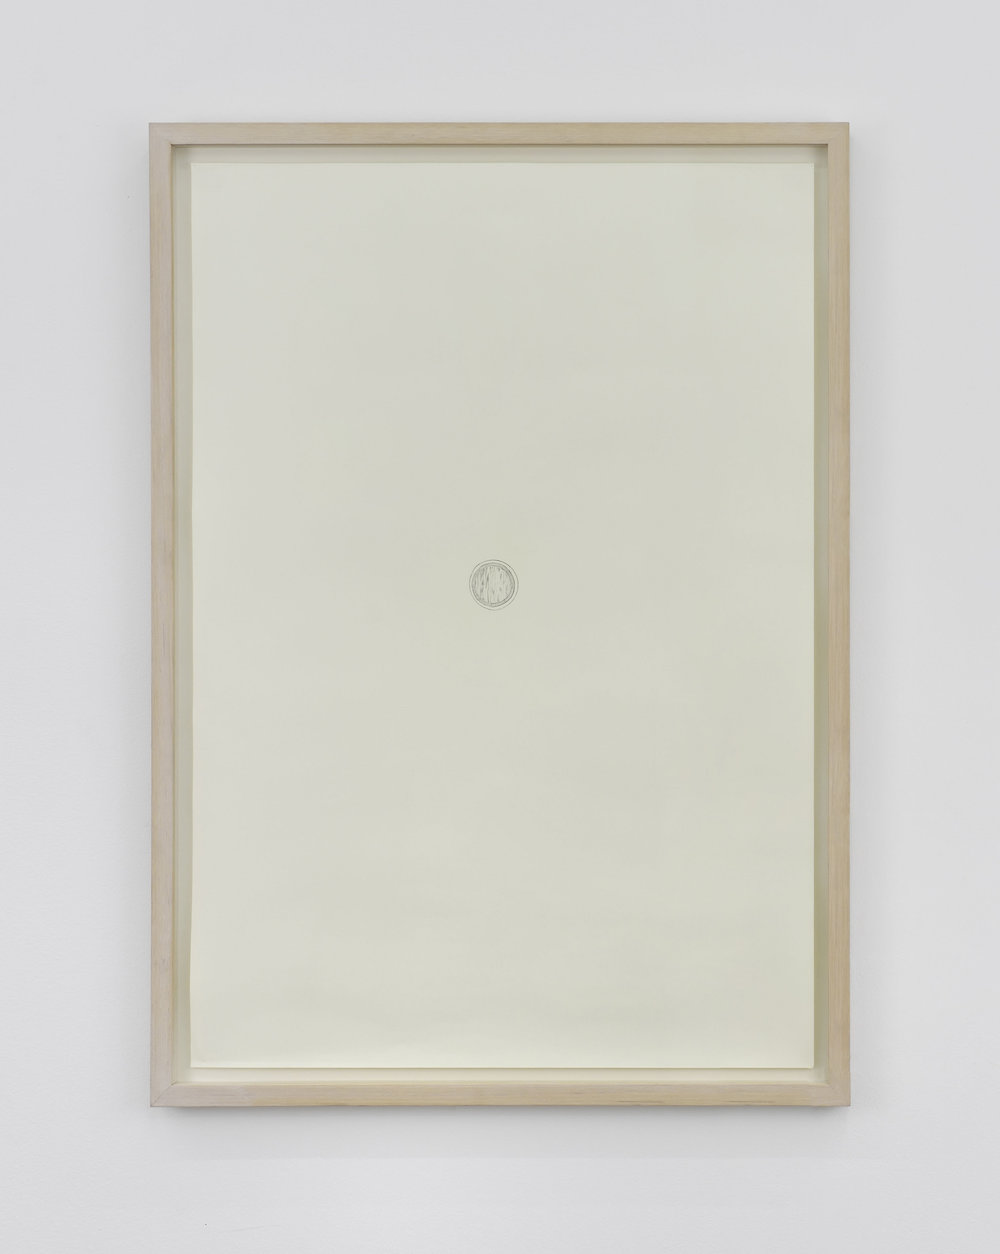 Trisha Donnelly The Volume, 2002 pencil on paper 36 7/32 x 25 25/32 in (92 x 65,5 cm)